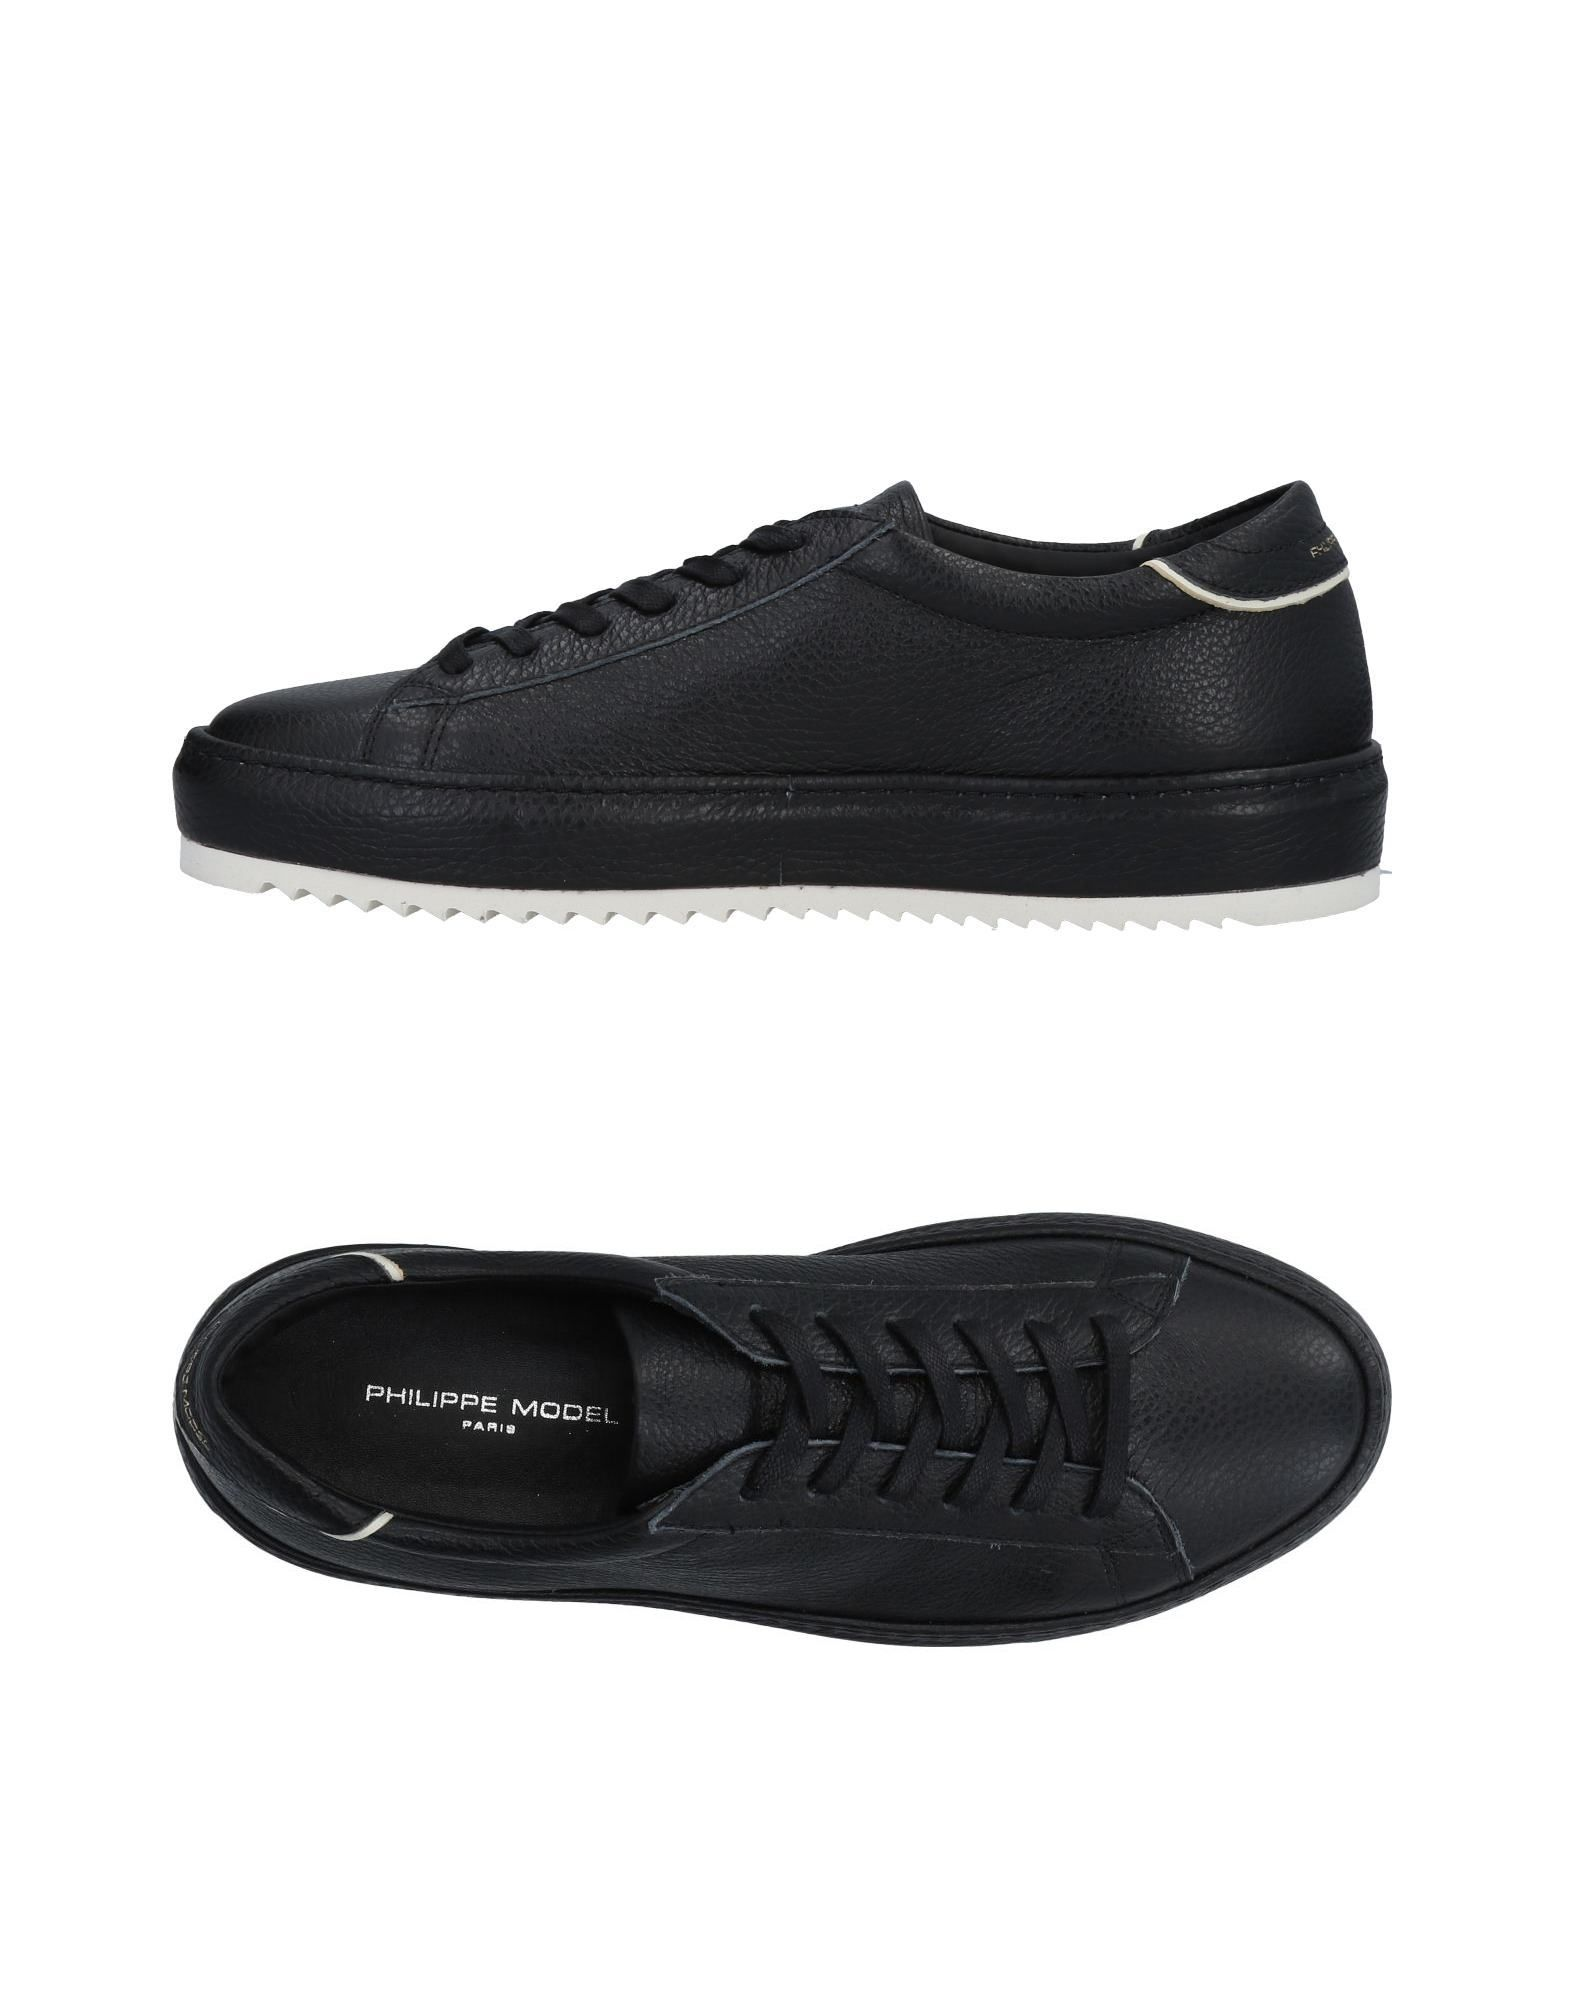 Philippe Model Sneakers - Men Philippe Model Sneakers online on 11482920UK  United Kingdom - 11482920UK on db34bf